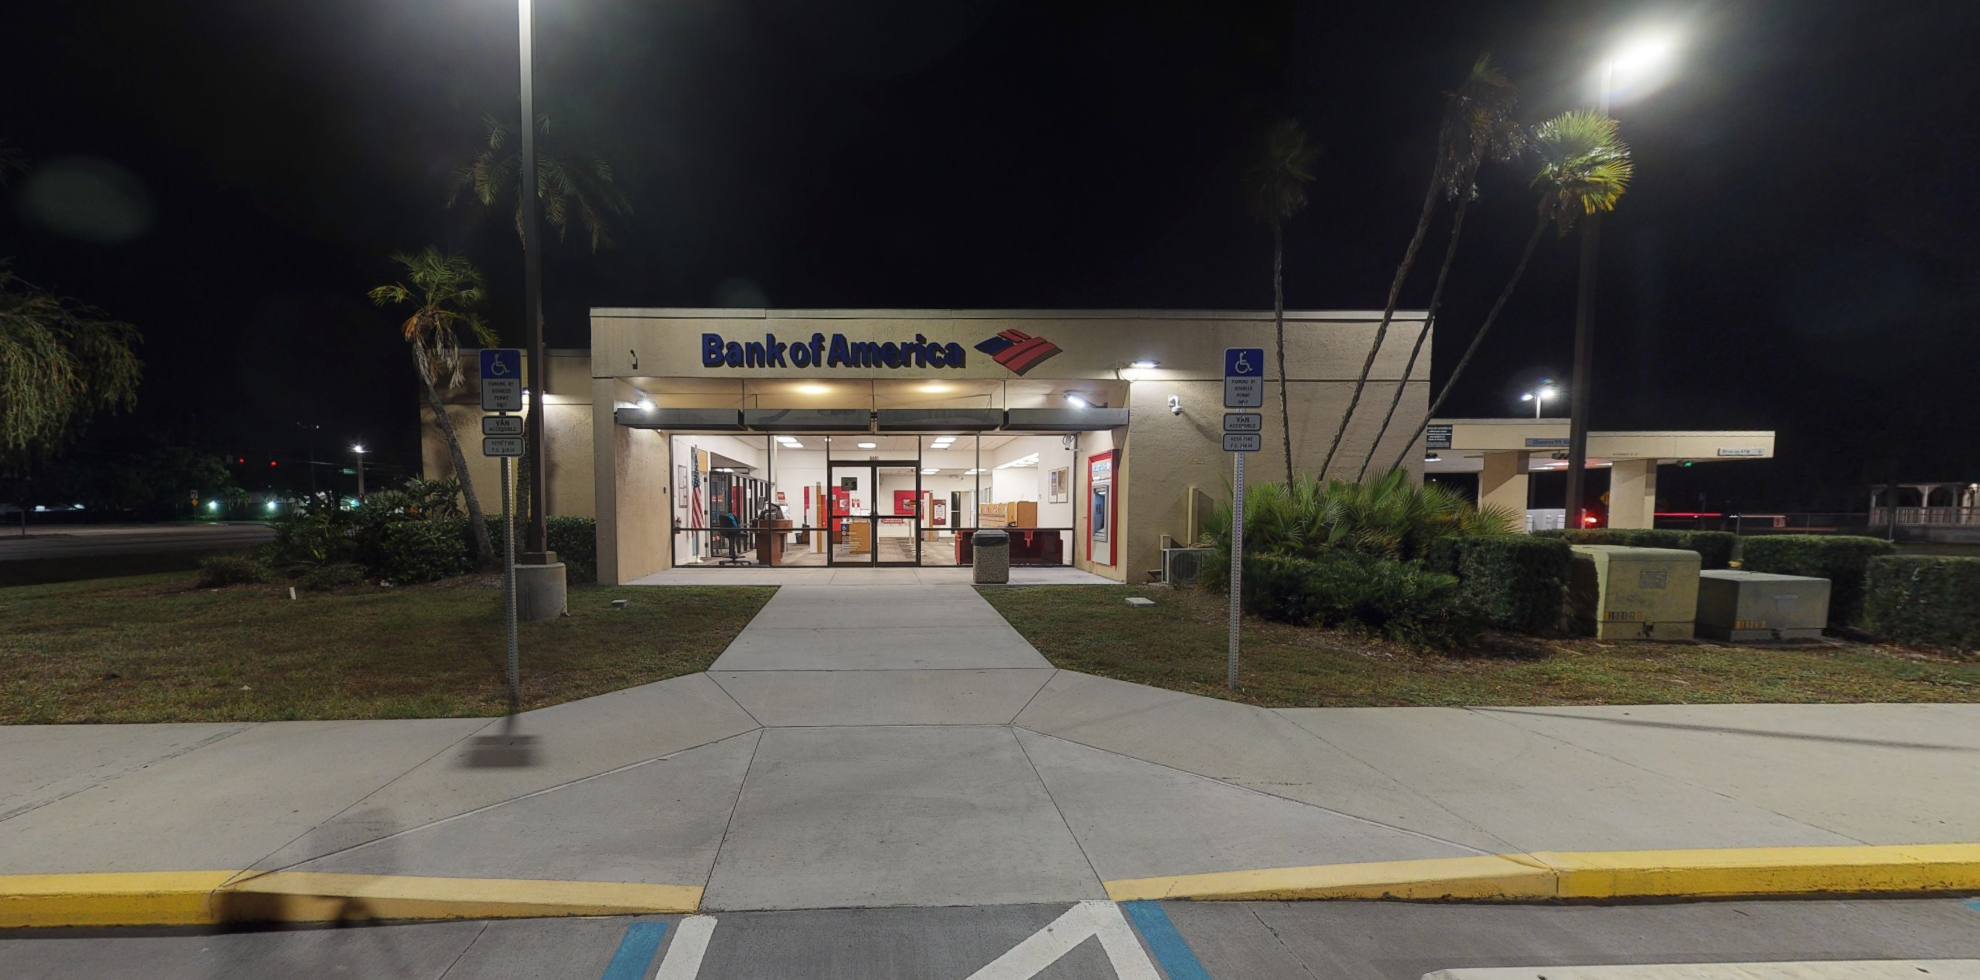 Bank of America financial center with drive-thru ATM | 8681 Cypress Lake Dr, Fort Myers, FL 33919